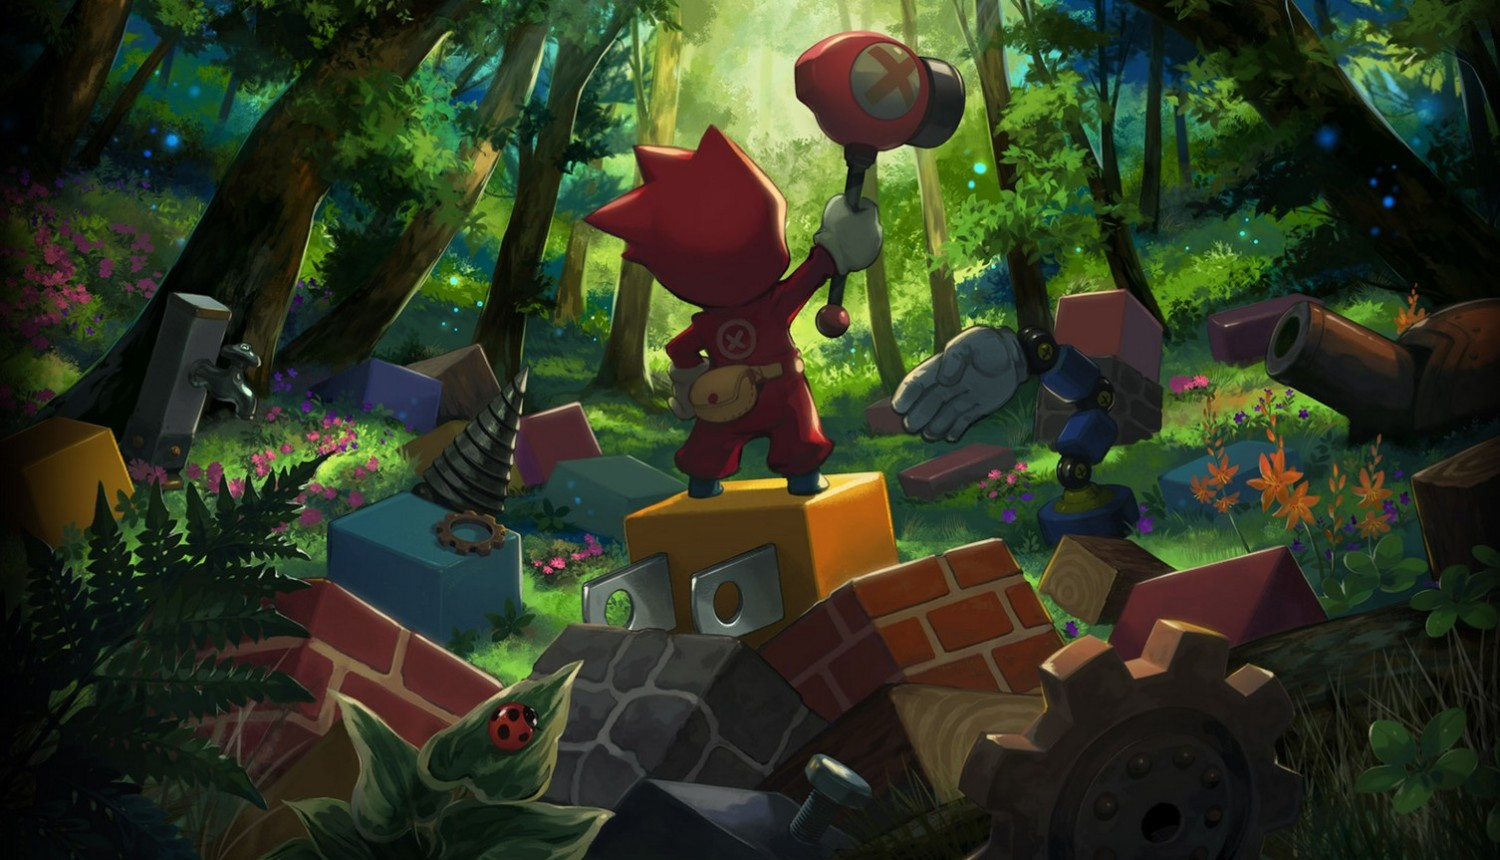 Ninja Box Exclusively Announced For Nintendo Switch By Bandai Namco